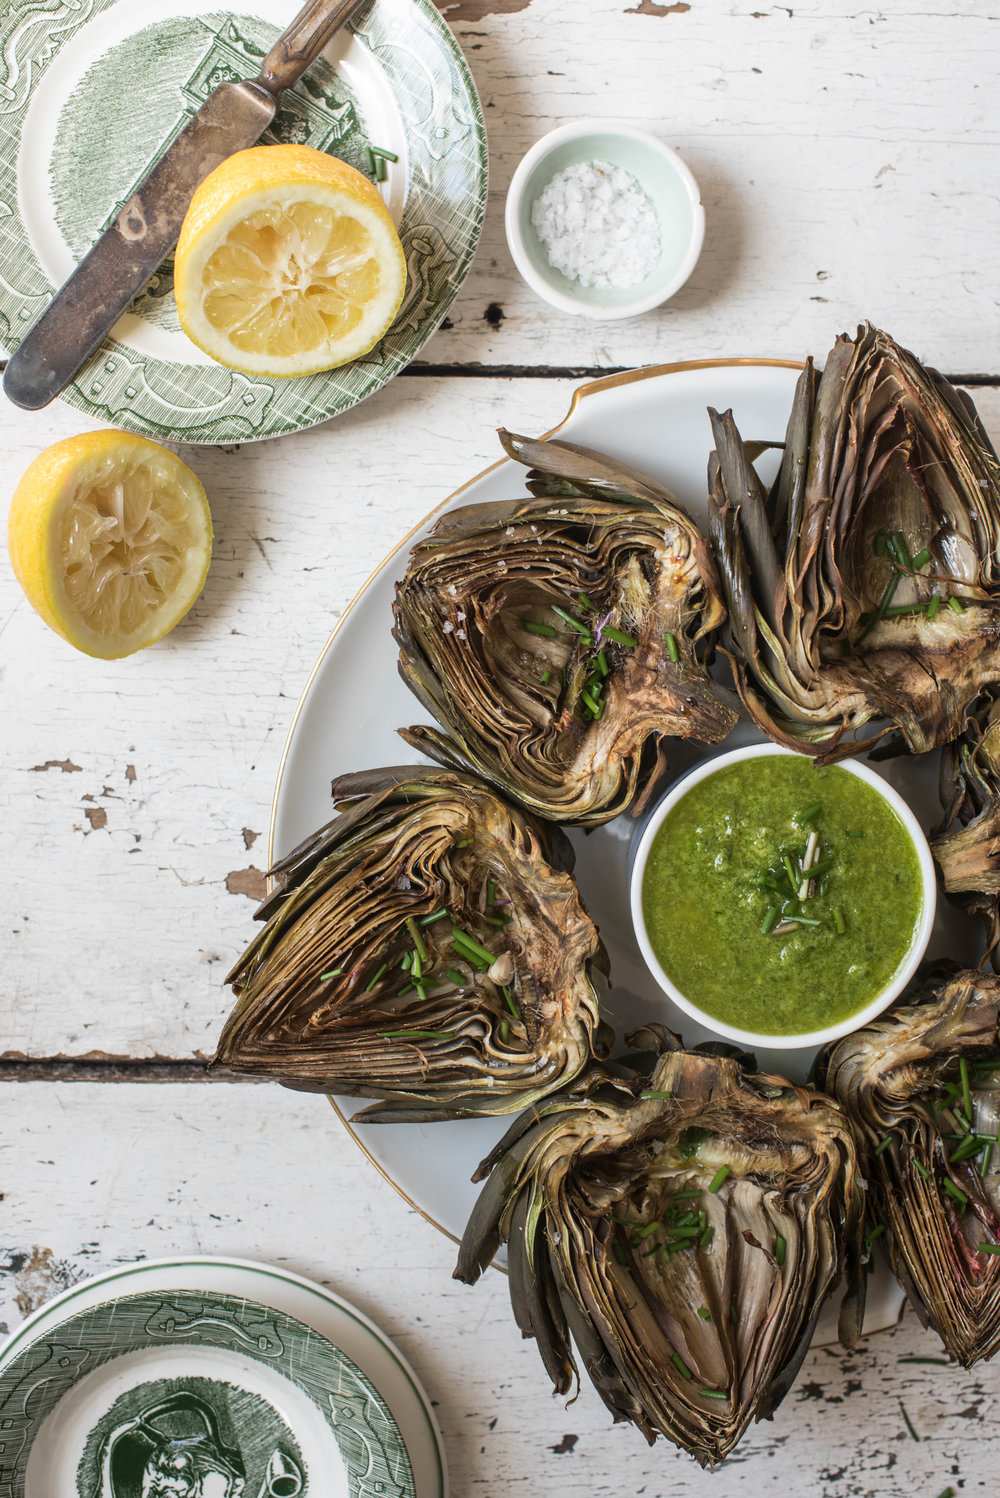 ROSE & IVY Journal At the Market | Wild Garlic + Roasted Artichokes & Wild Garlic Vinaigrette